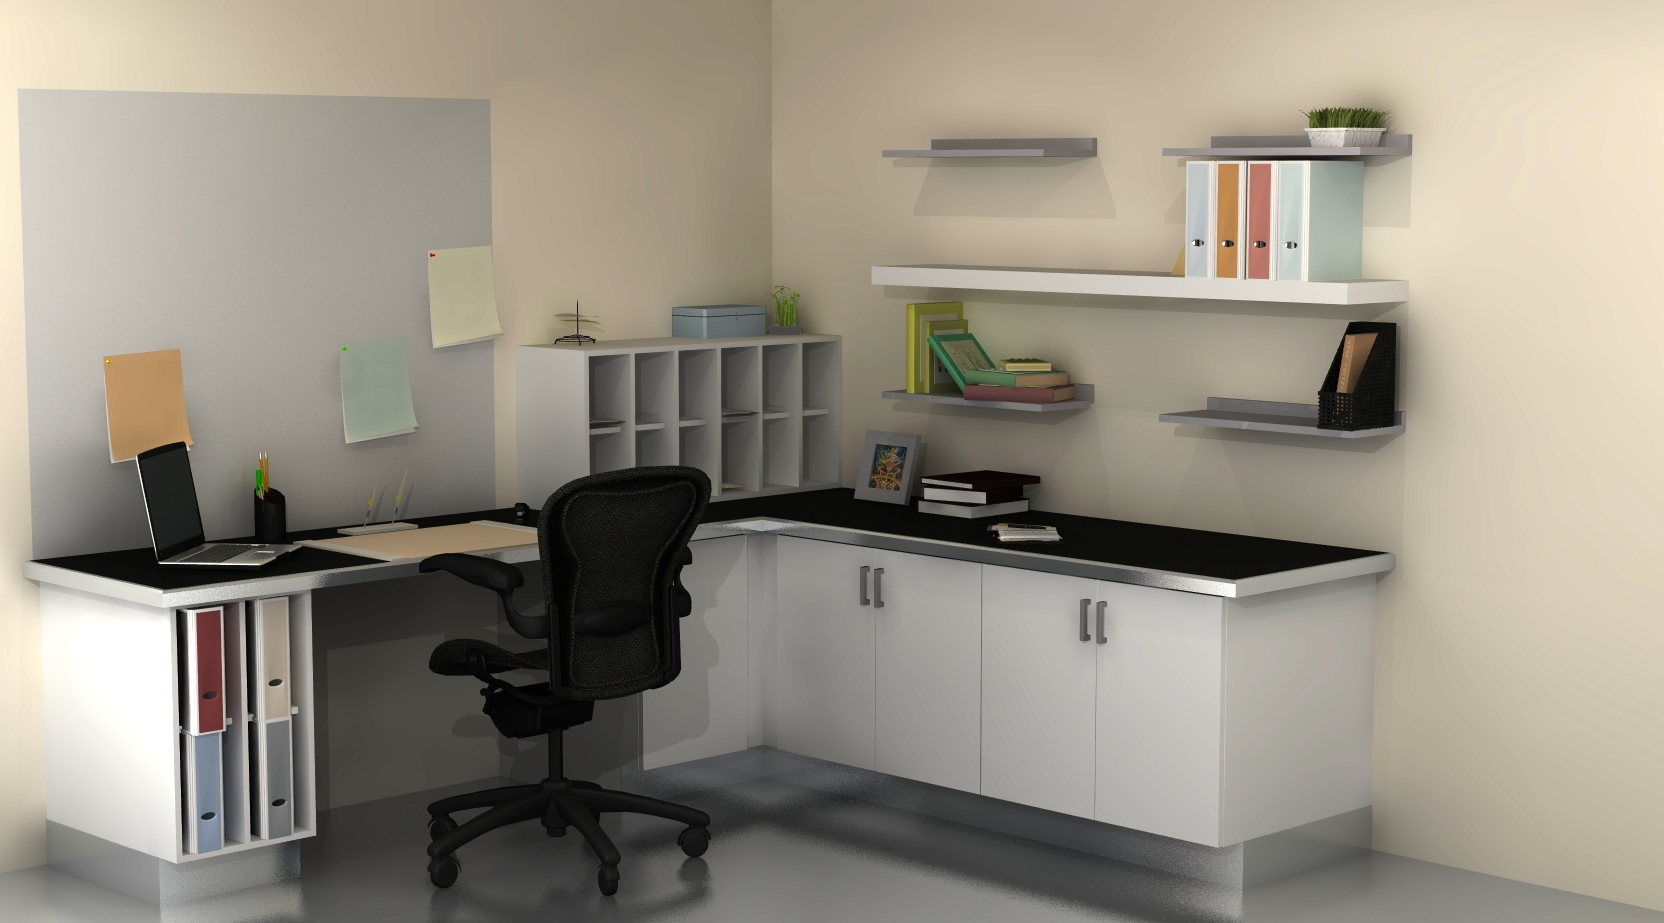 Useful spaces a home office with ikea cabinets for Best home office design ideas